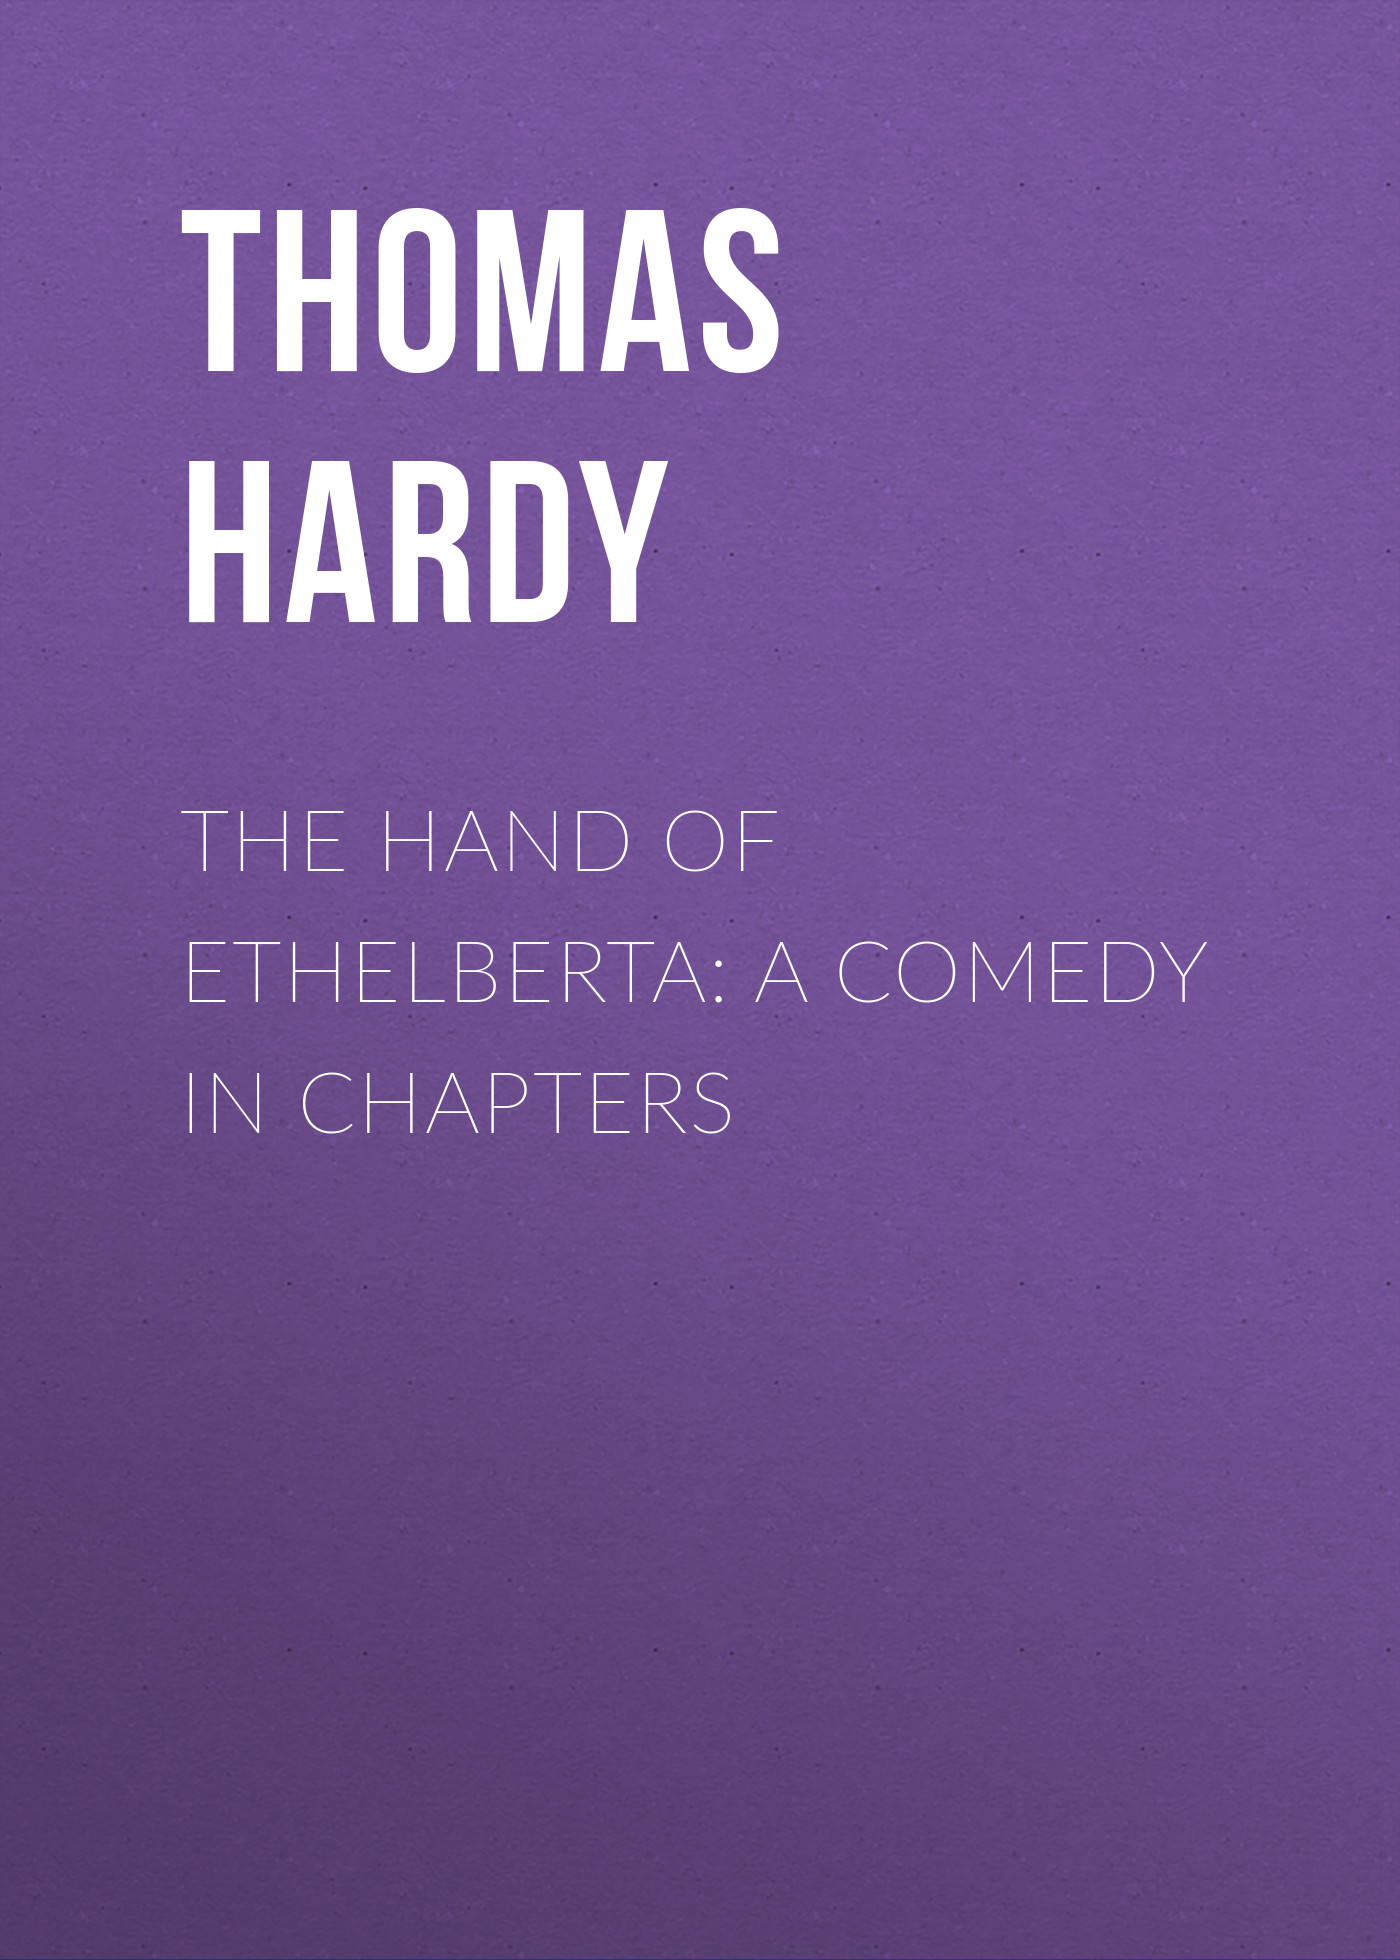 Thomas Hardy The Hand of Ethelberta: A Comedy in Chapters thomas hardy two on a tower